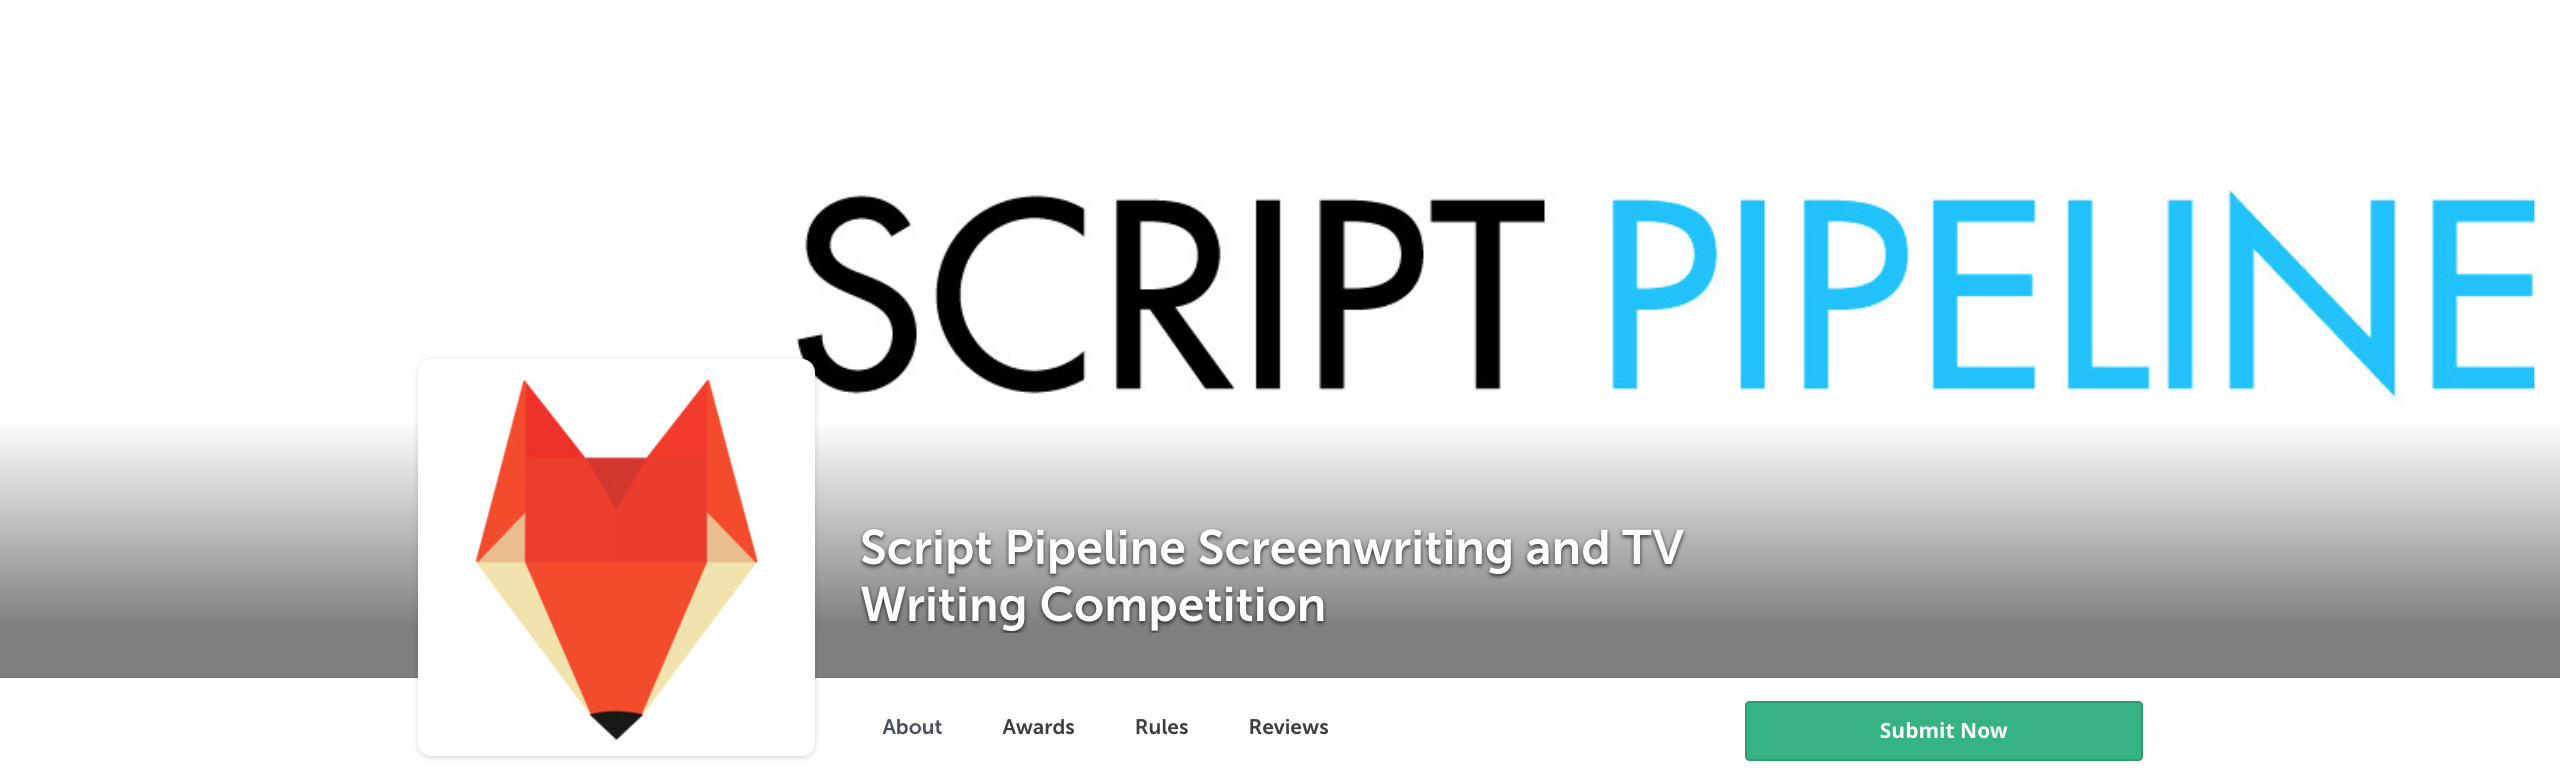 Script Pipeline Screenwriting and TV Writing Competition